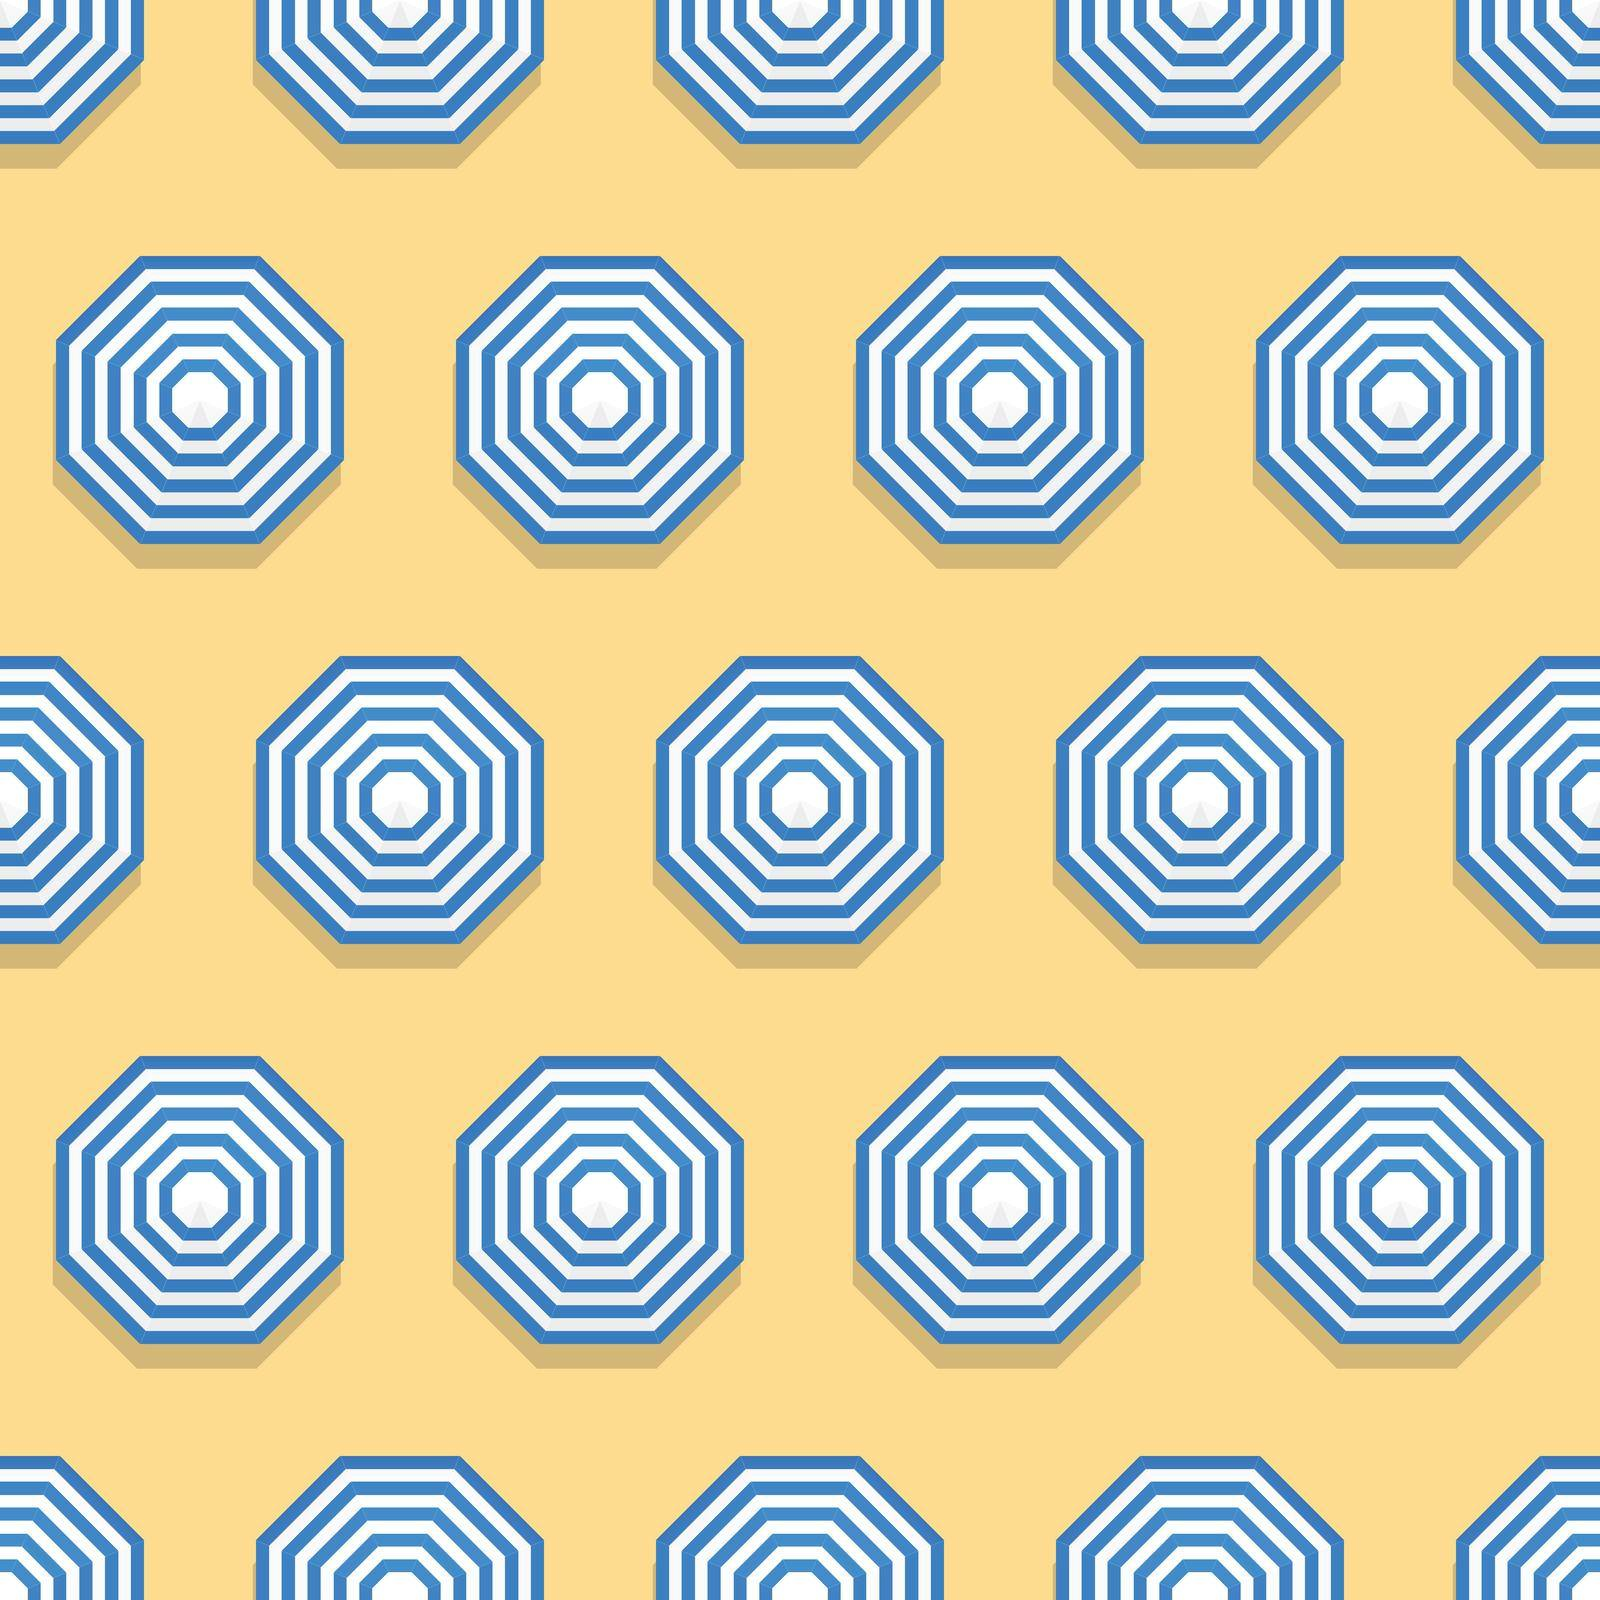 Summer seamless pattern with parasols from above, on beach sand.